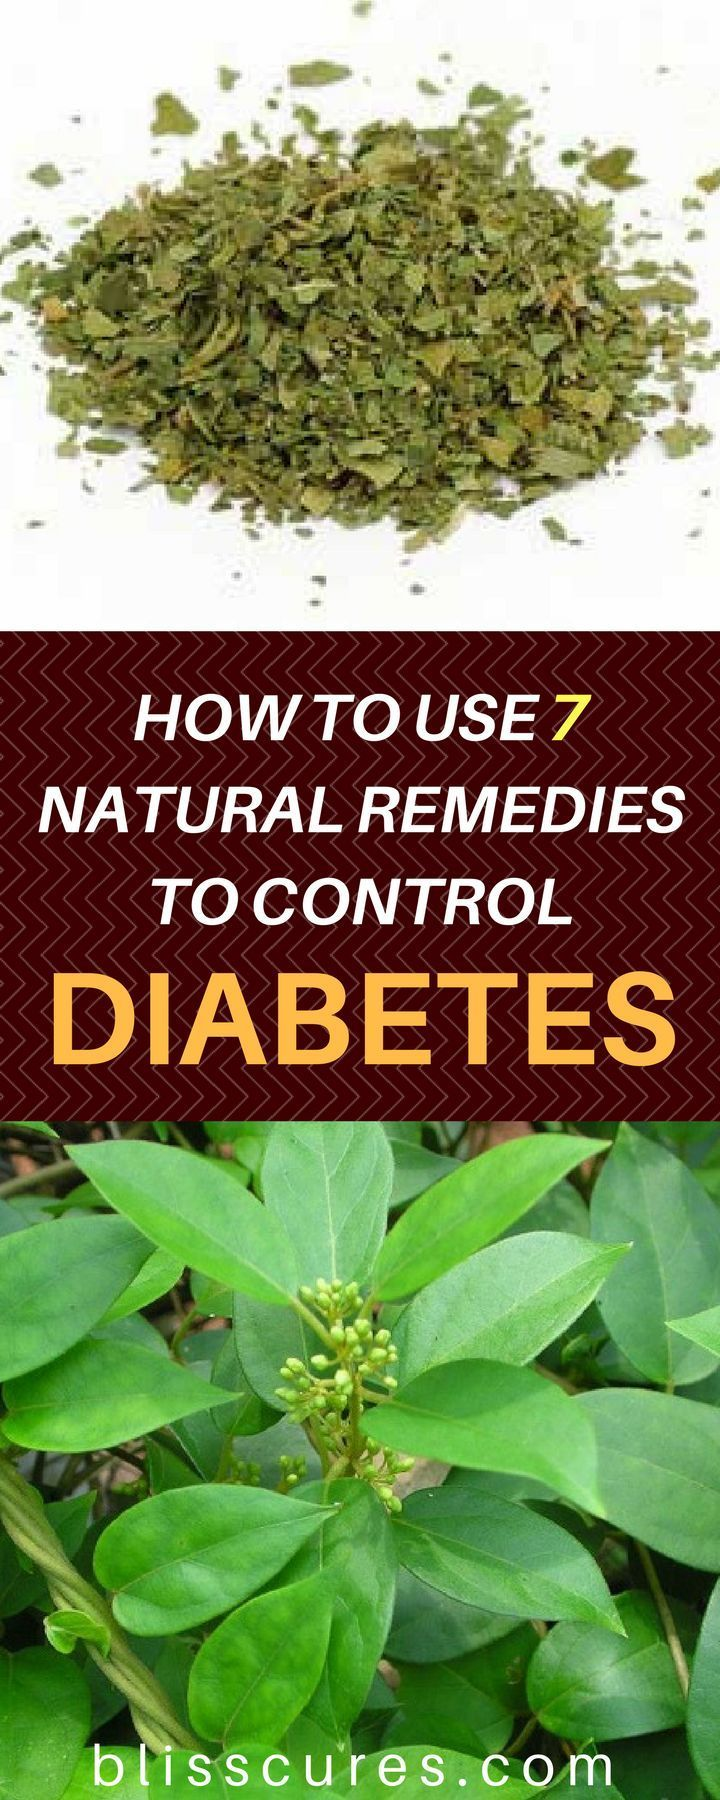 HOW TO USE 7 NATURAL REMEDIES TO CONTROL DIABETES